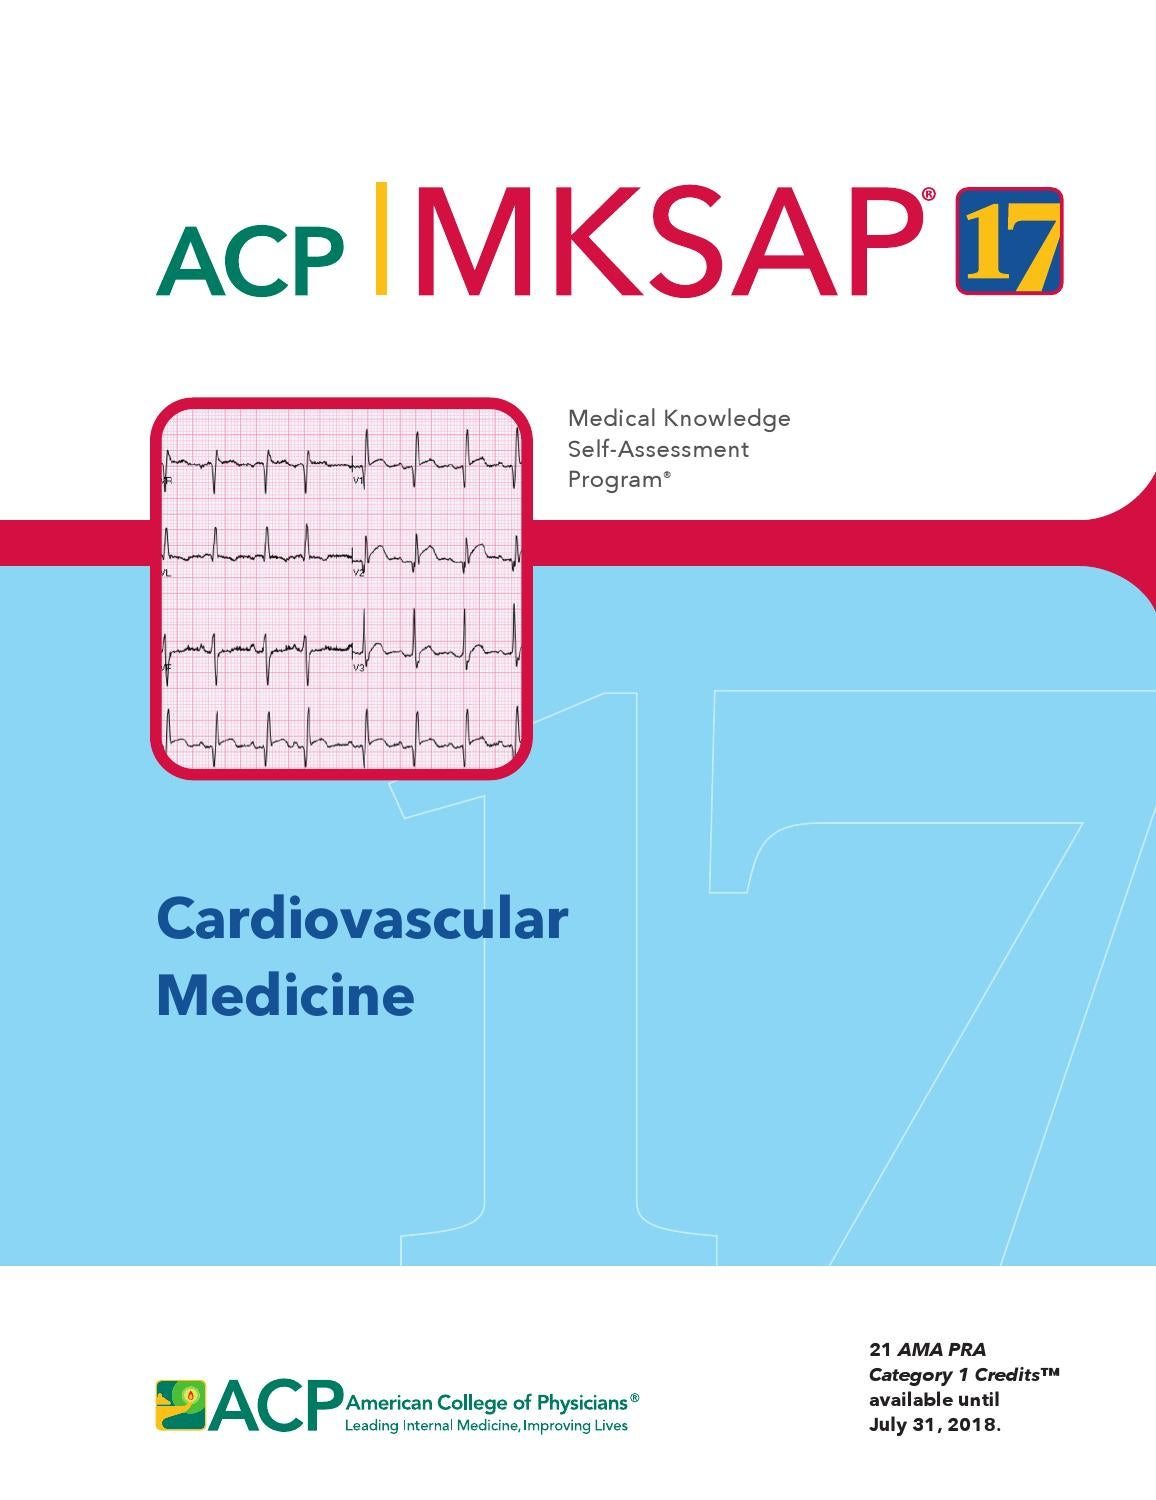 Mksap 17 Cardiovascular Medicine By American College Of Physicians